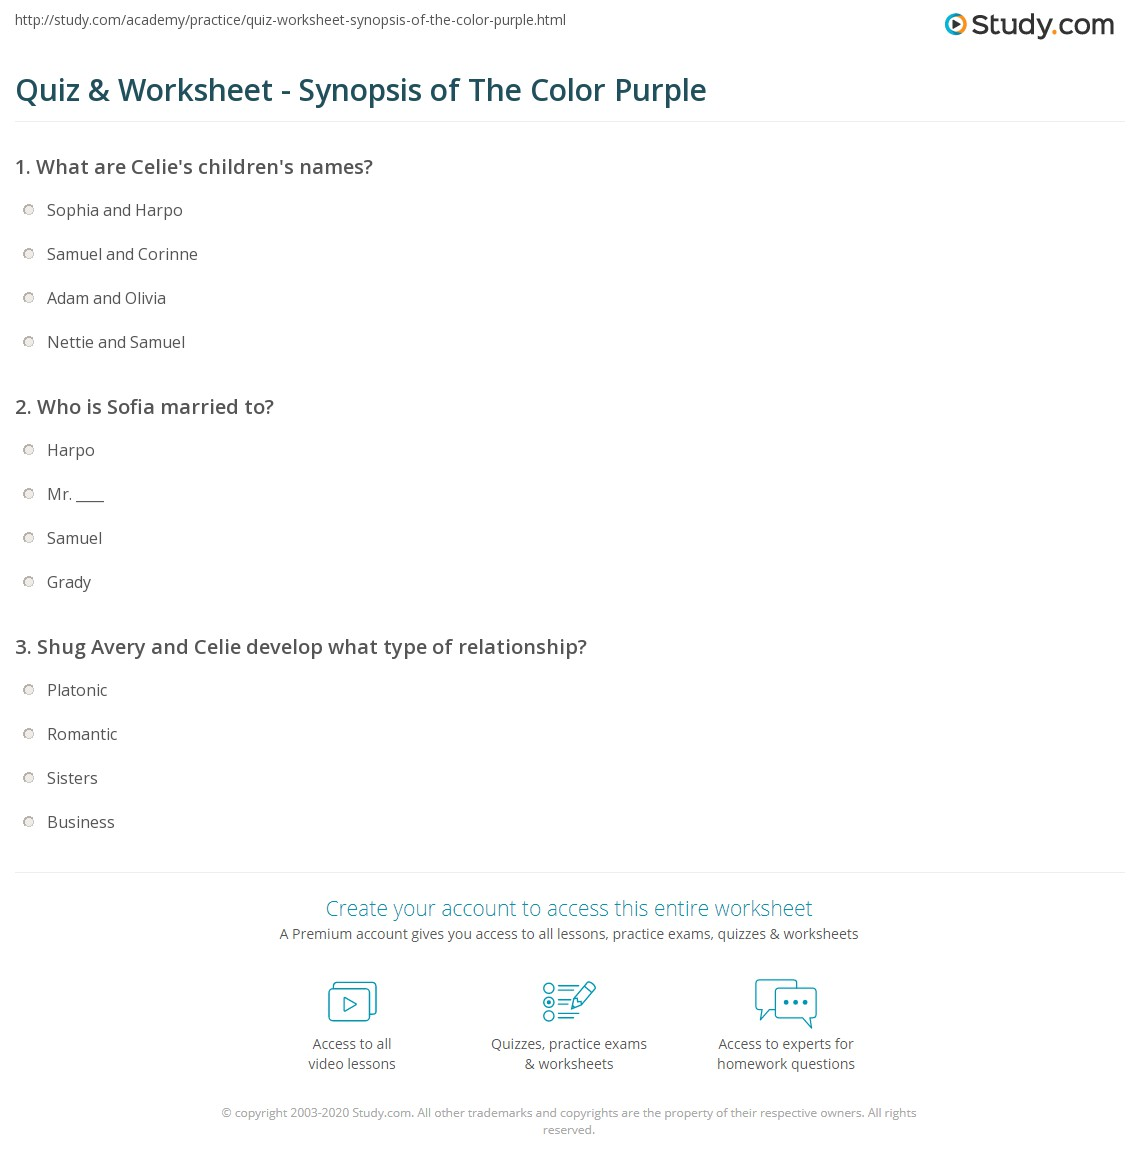 the color purple summary short murderthestout quiz worksheet synopsis of the color purple study com